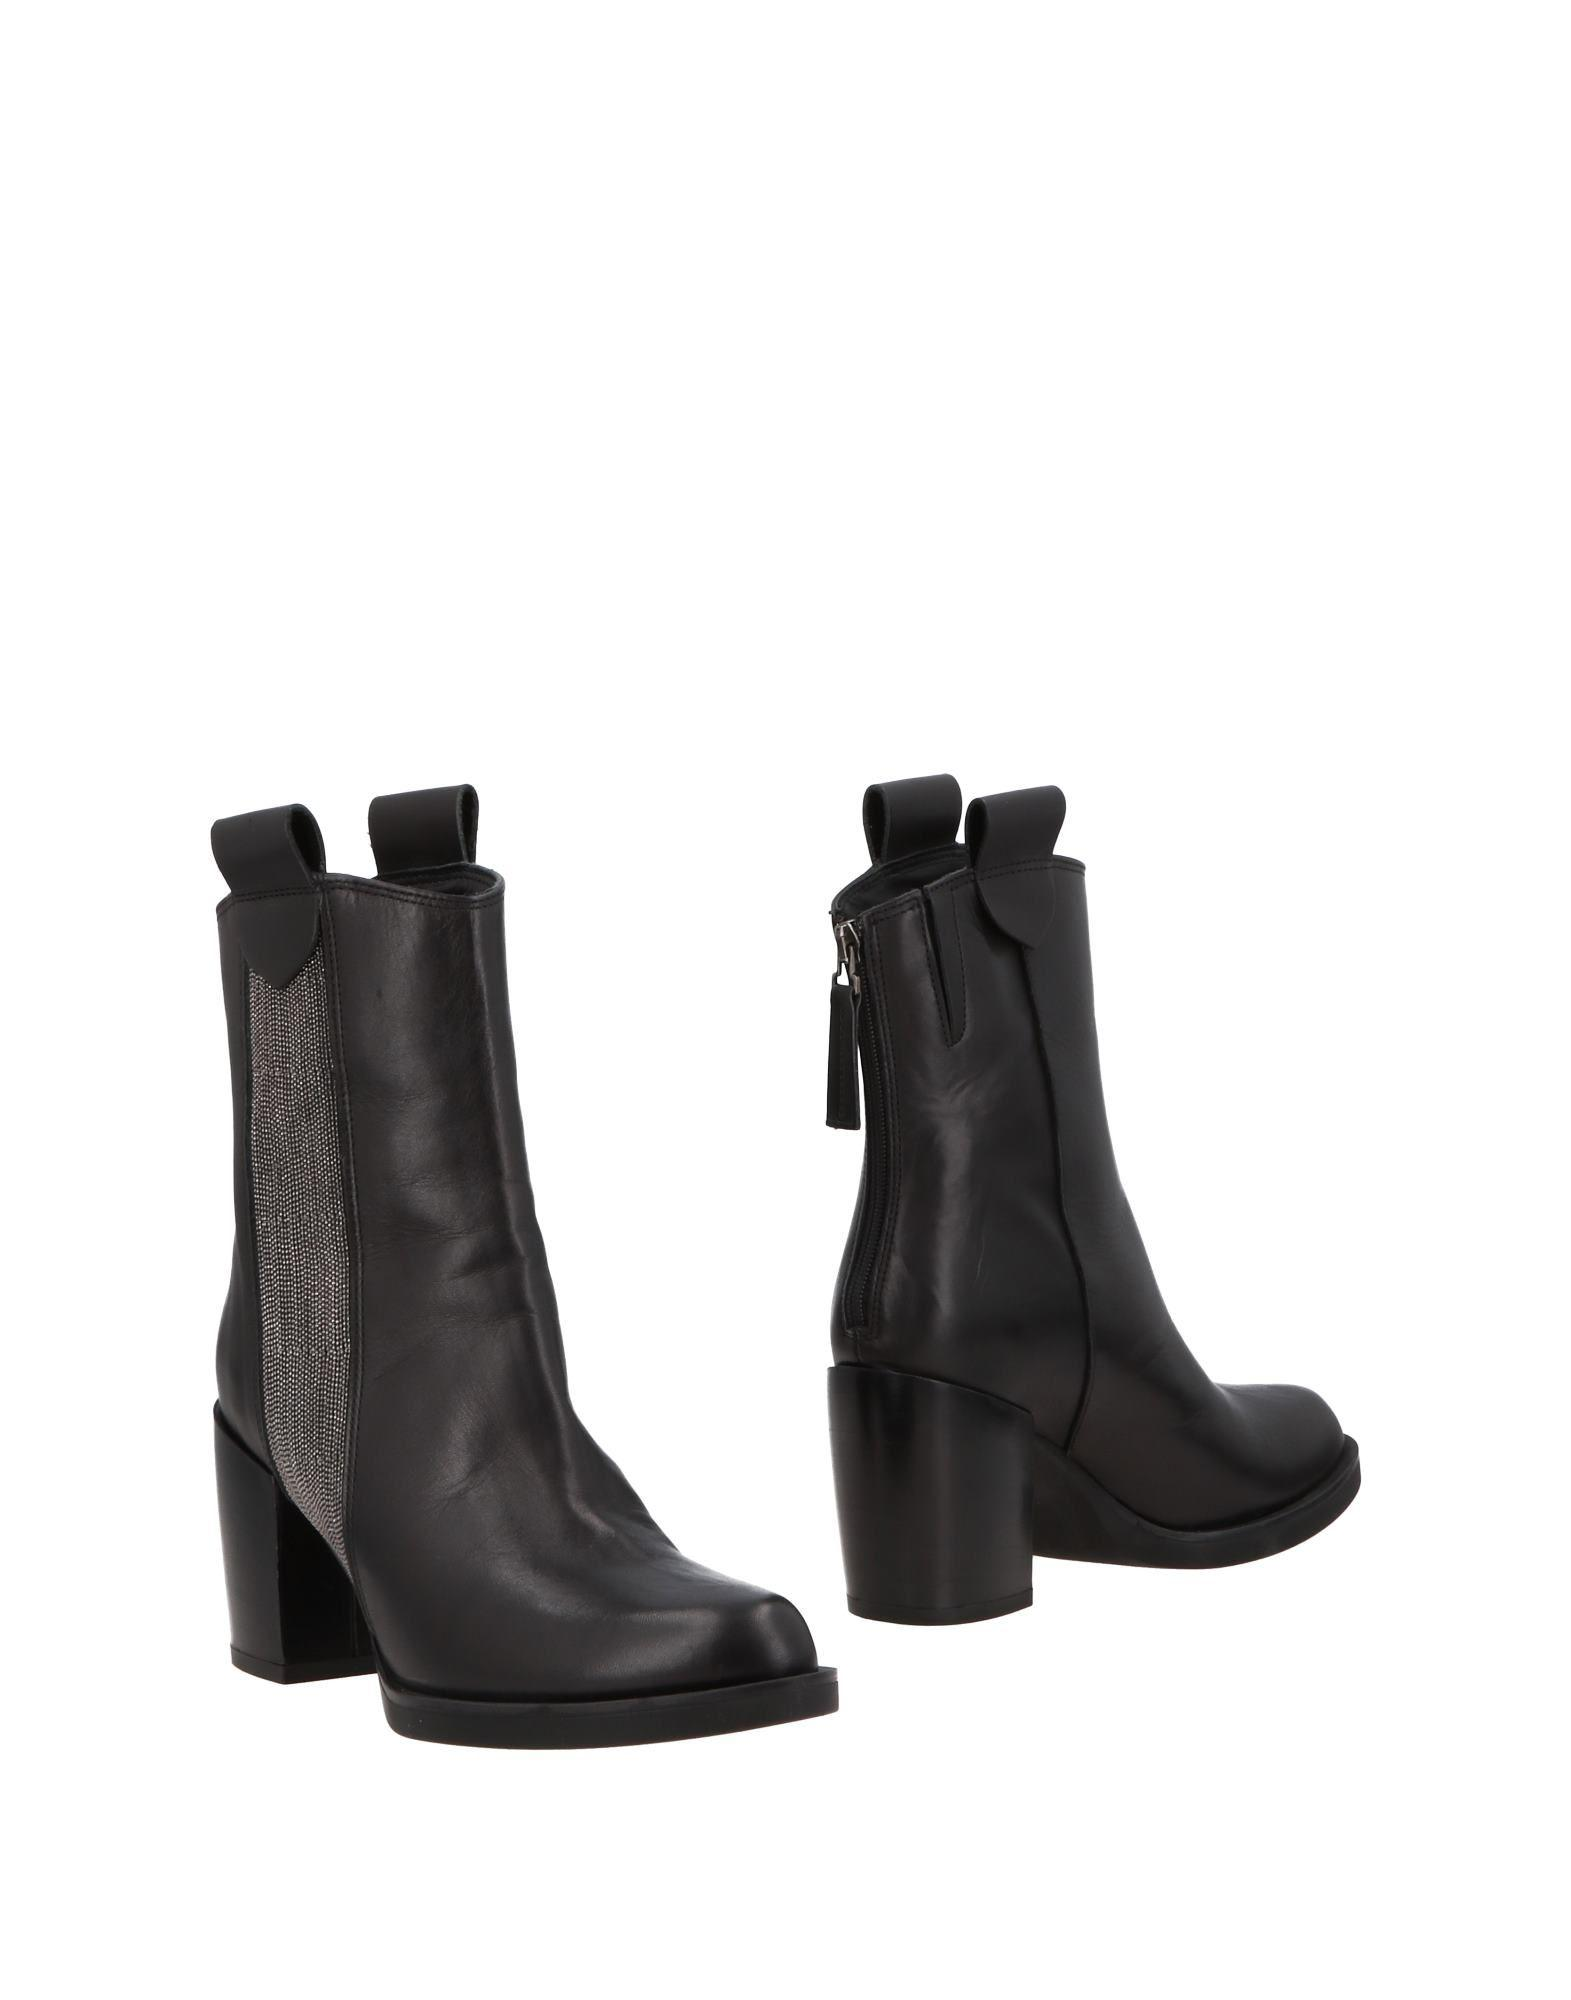 0df4f1eb206 Ankle Lyst Jeannot Boots Black in wO08knP